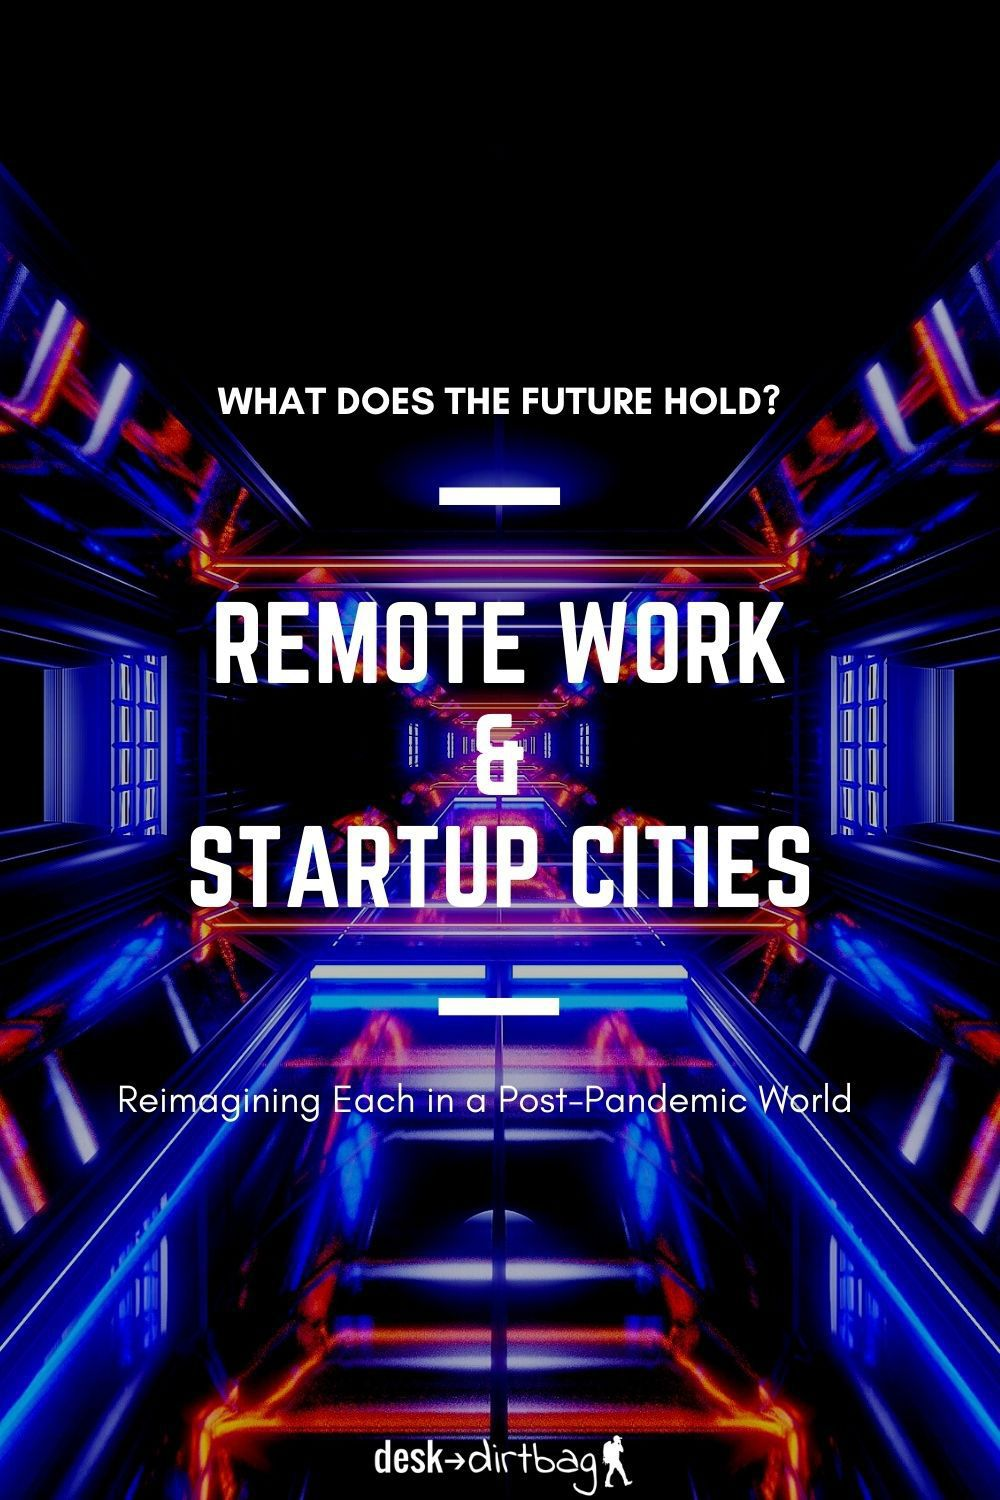 Reimagining Remote Work and Startup Cities in a Post-Pandemic World location-independence, freelancing